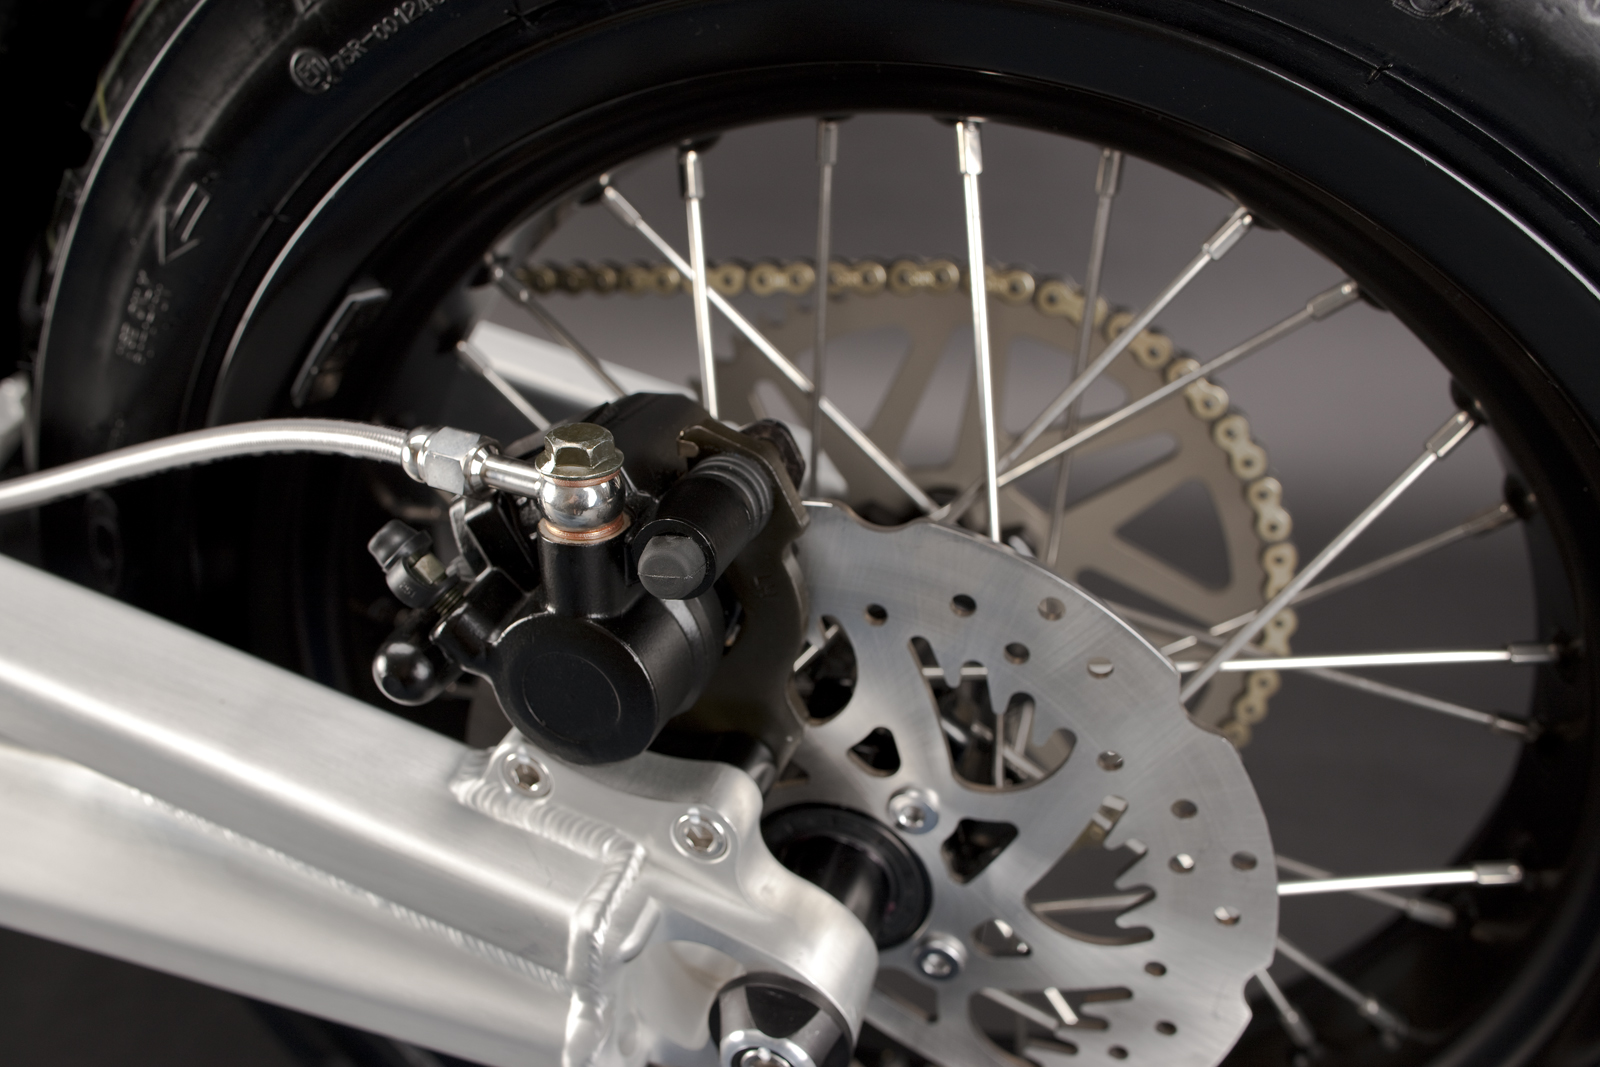 2010 Zero S Electric Motorcycle: Rear Brake